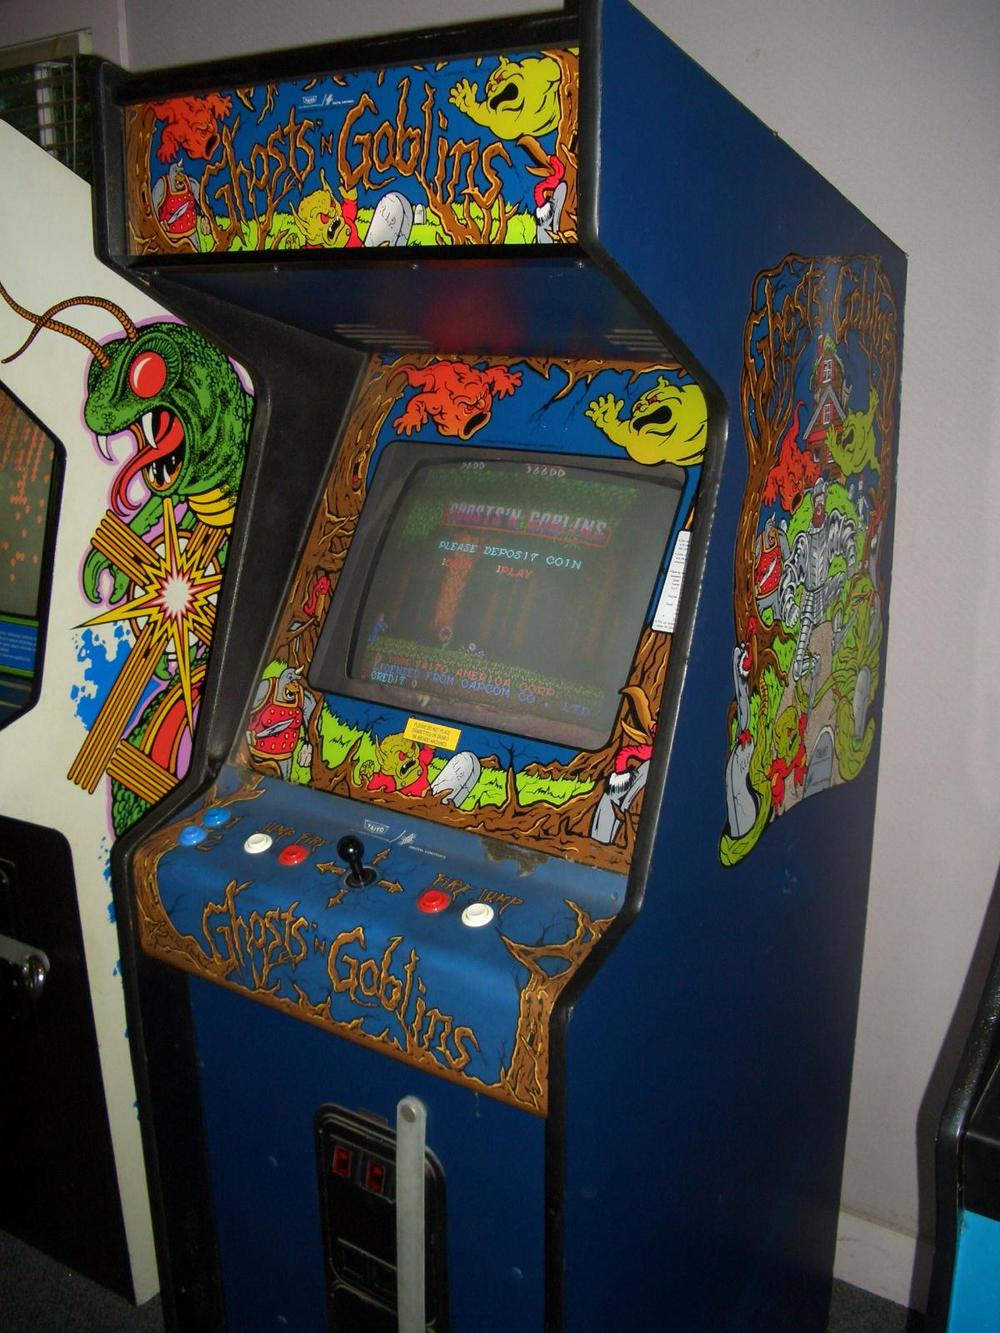 I will say this: the original arcade cabinet looks gnarly. I see actual ghosts and actual goblins.